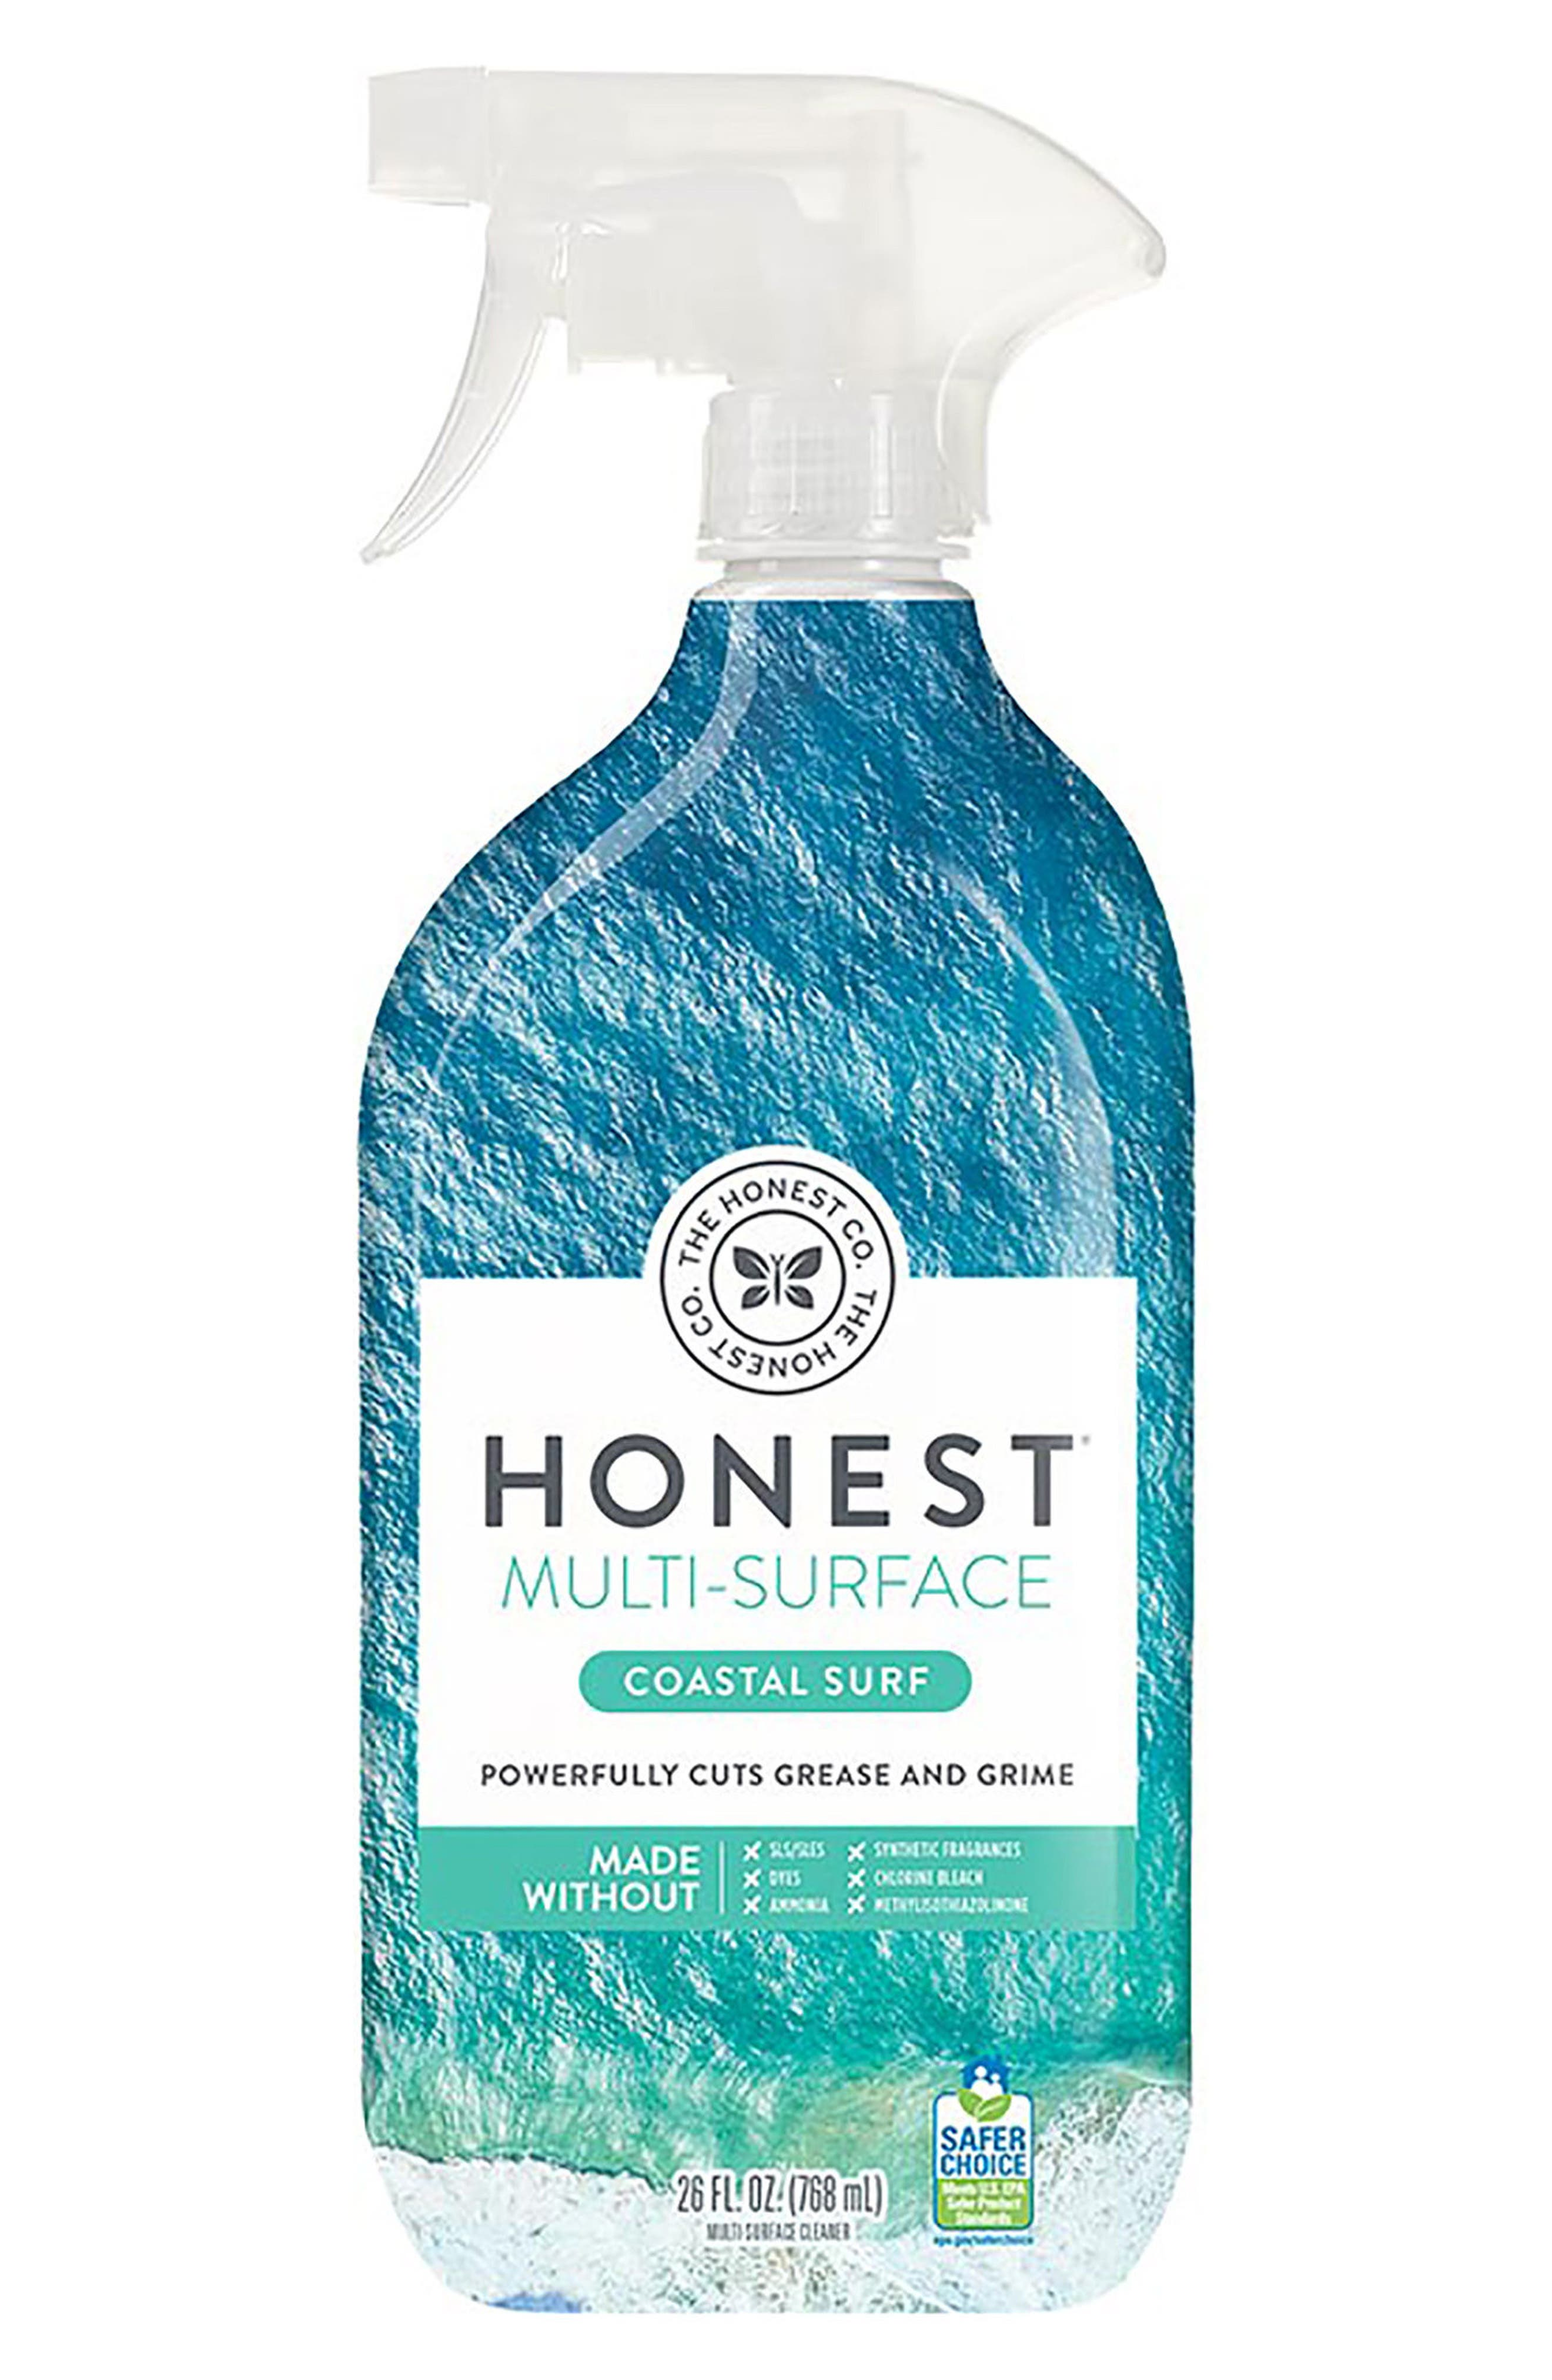 The Honest Company Coastal Surf Multi-Surface Cleaner